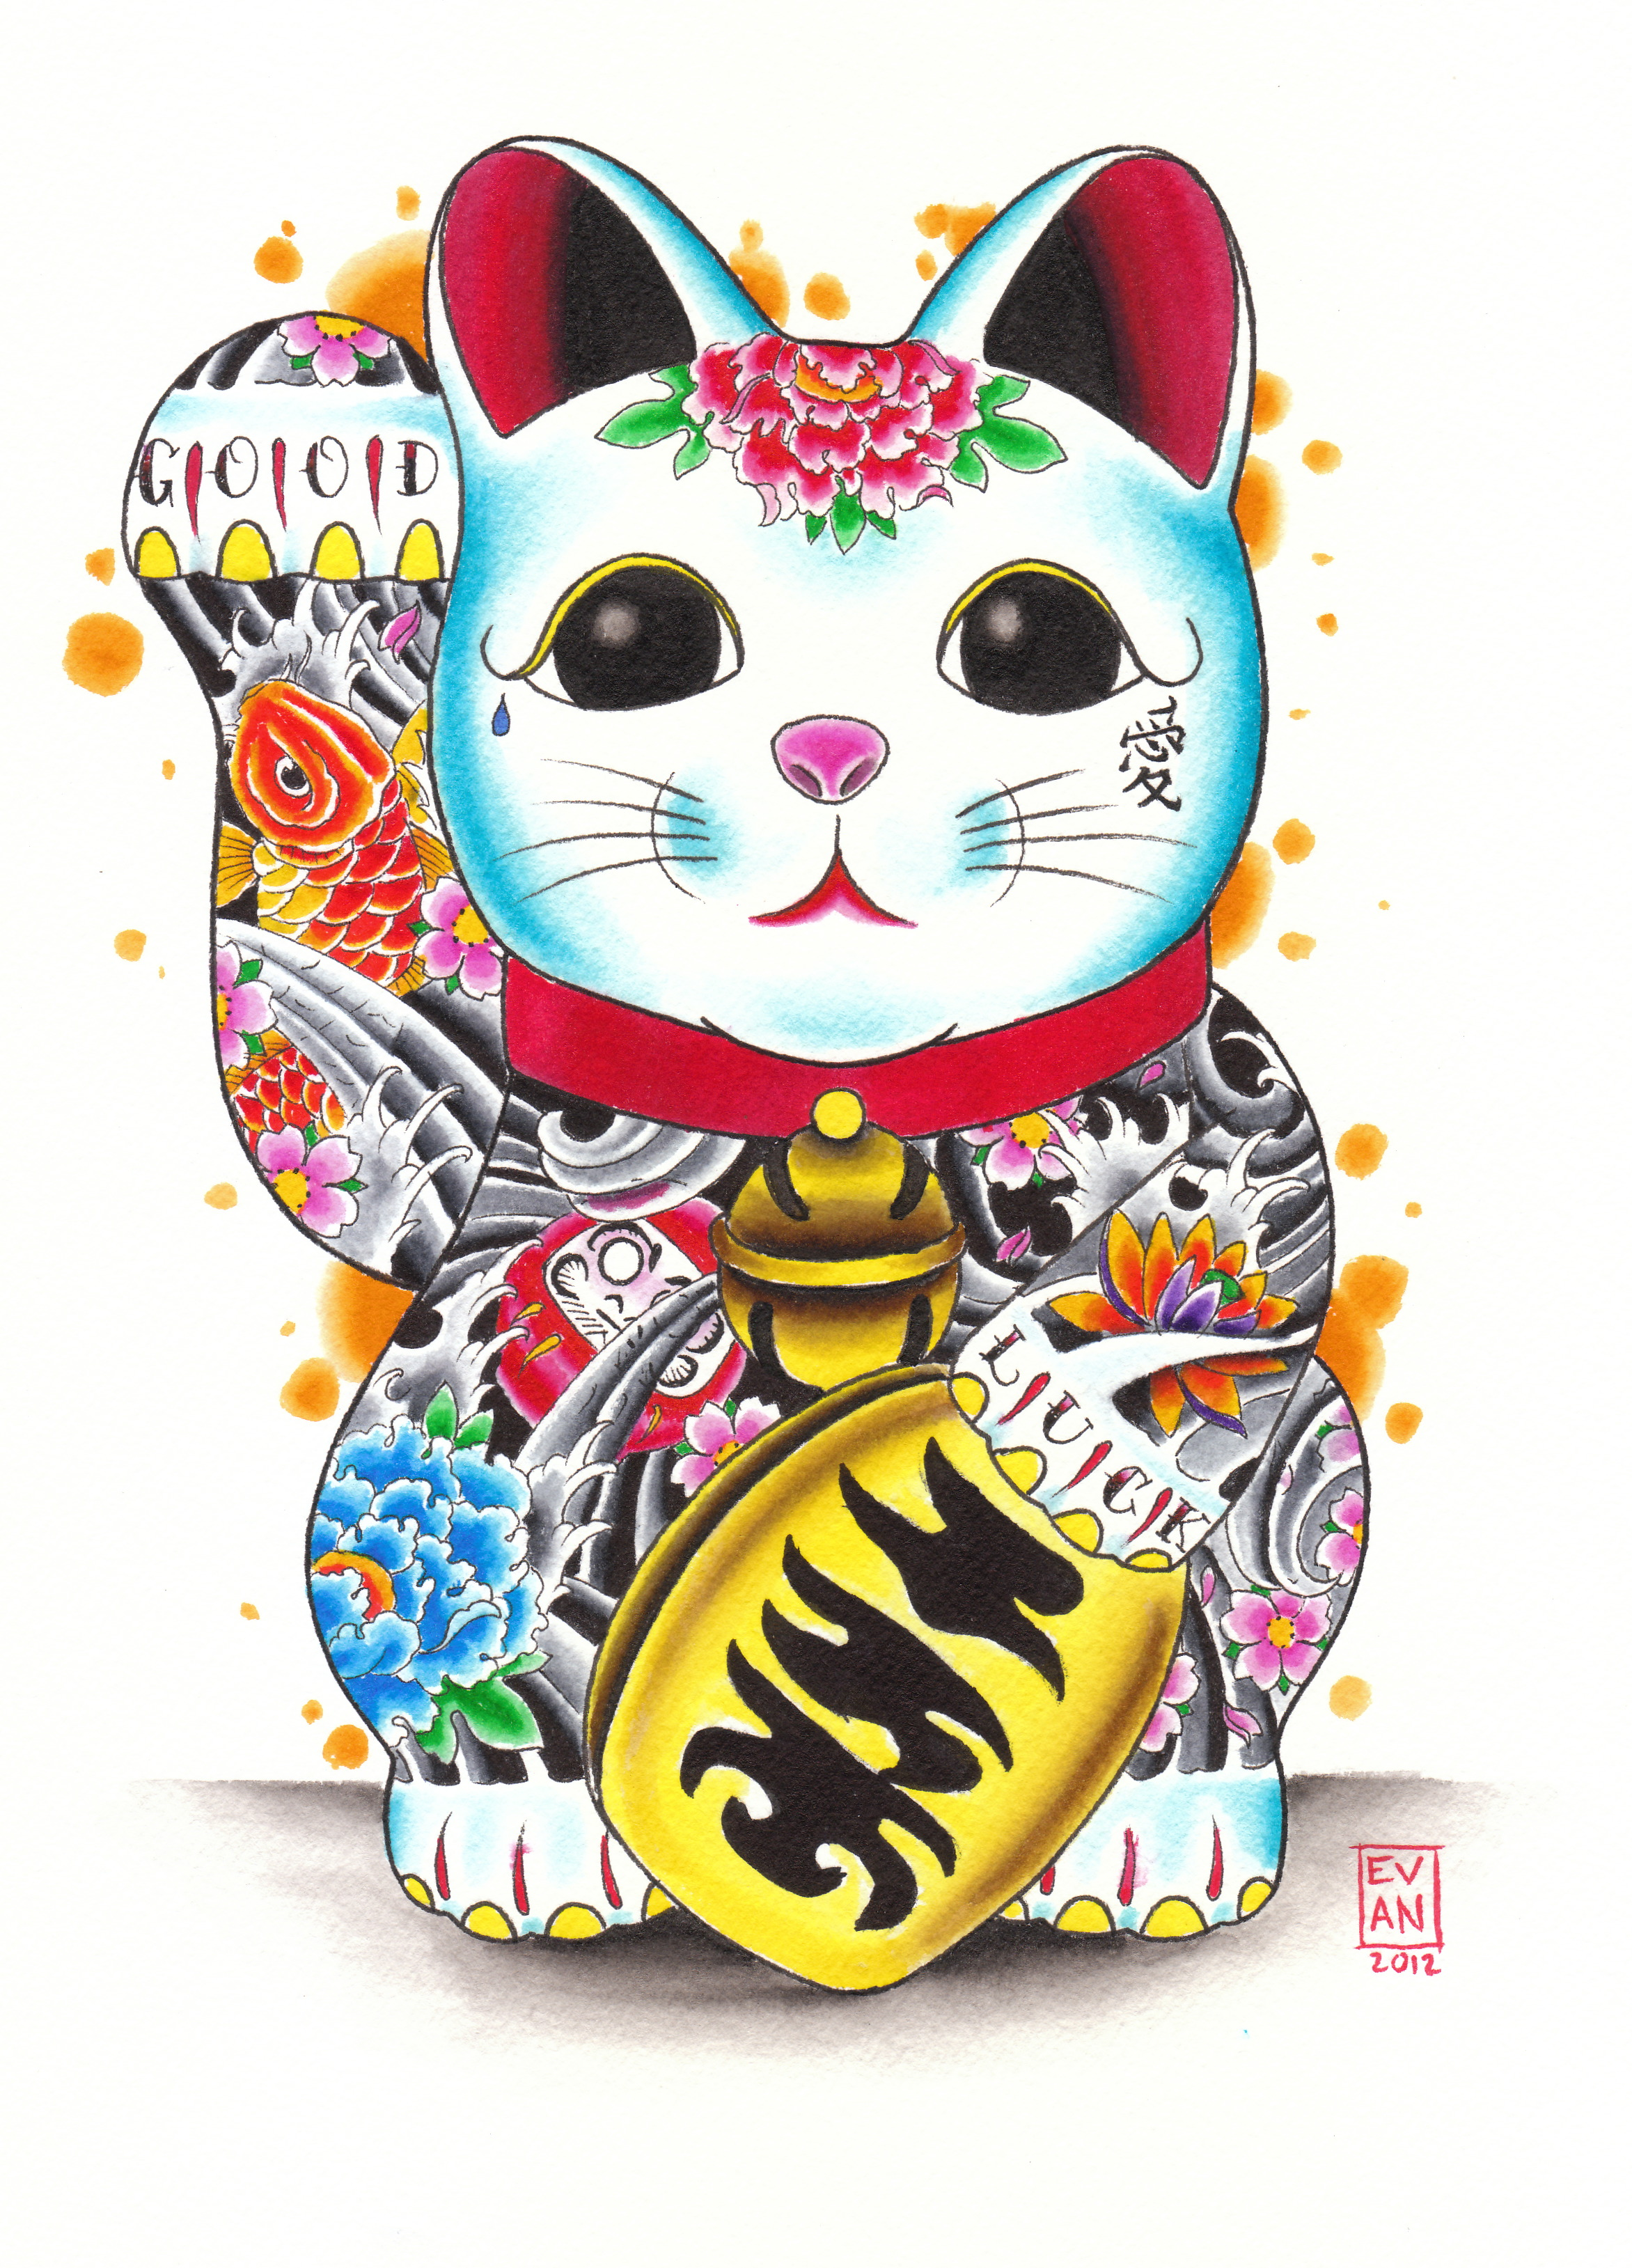 The Maneki-Neko or Beckoning Cat